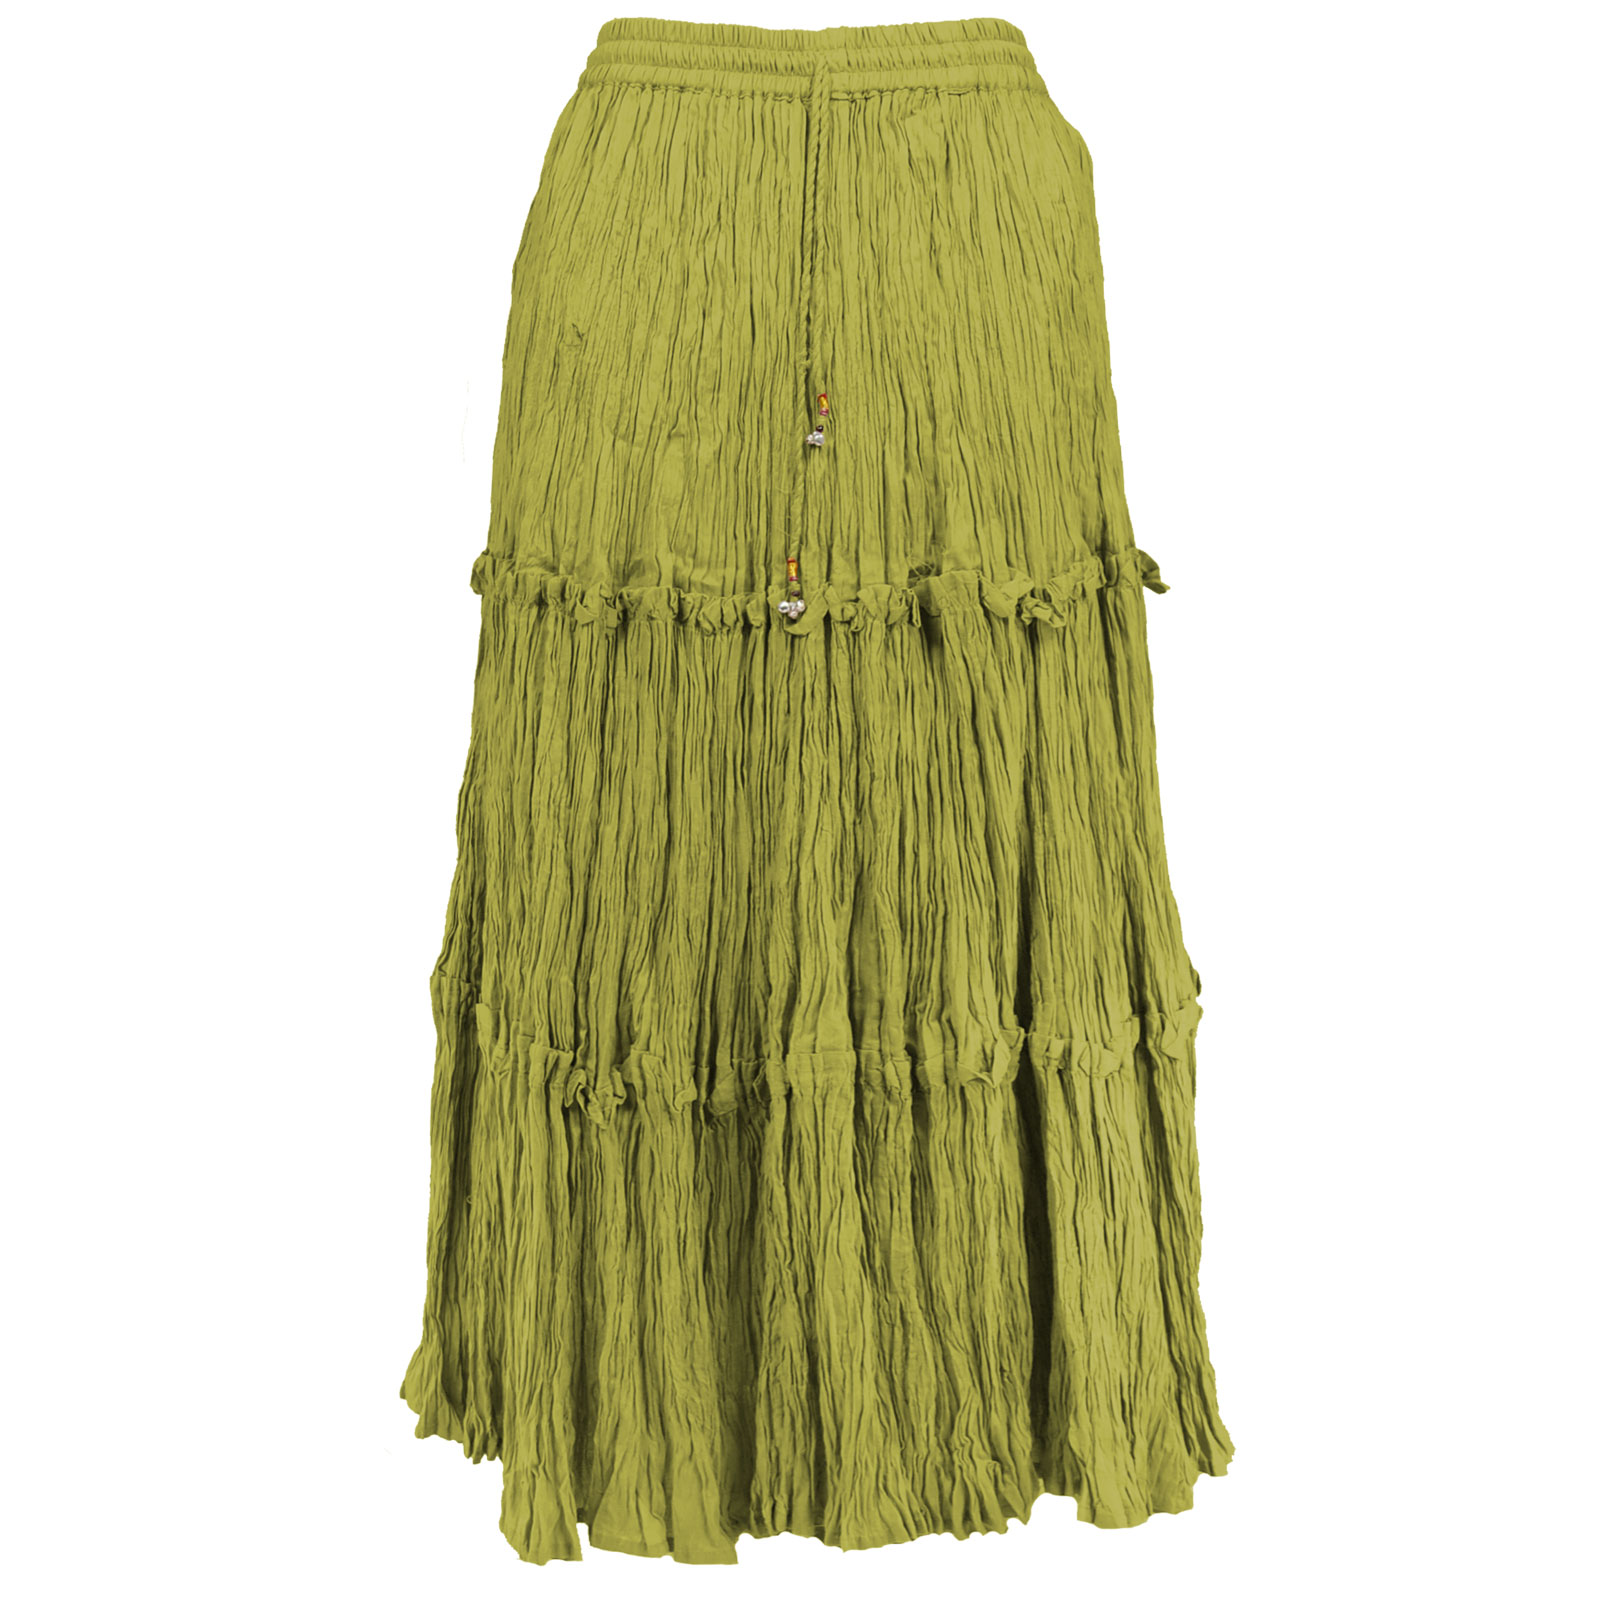 Wholesale Skirts - Long Cotton Broomstick with Pocket 503 Ankle Length - Olive - One Size (S-XL)